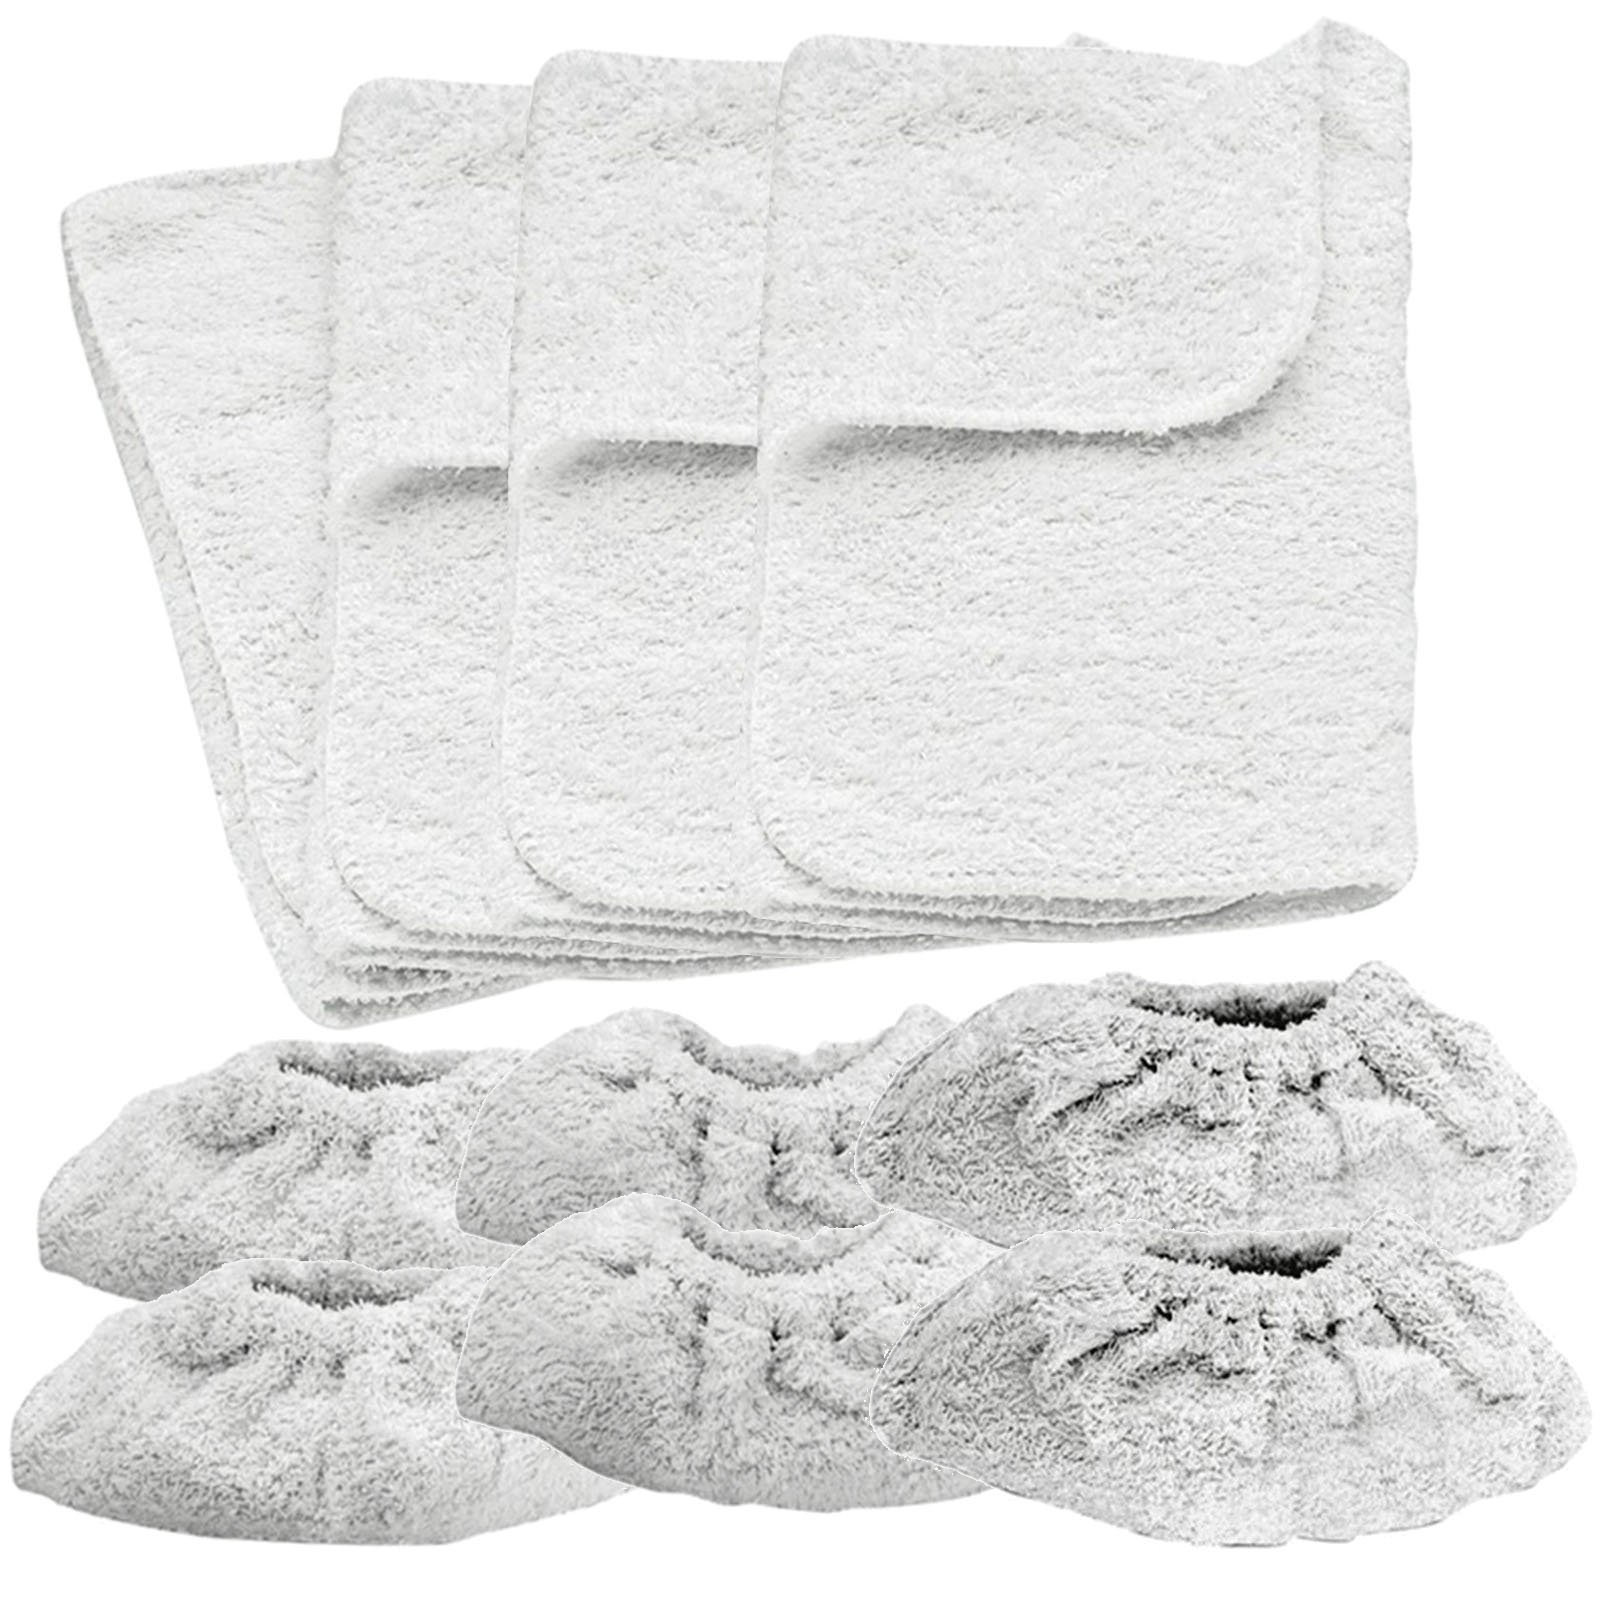 Spares2go Cotton Terry Cloth Covers & Pads for Karcher Steam Cleaner Hand Tool by Spares2go